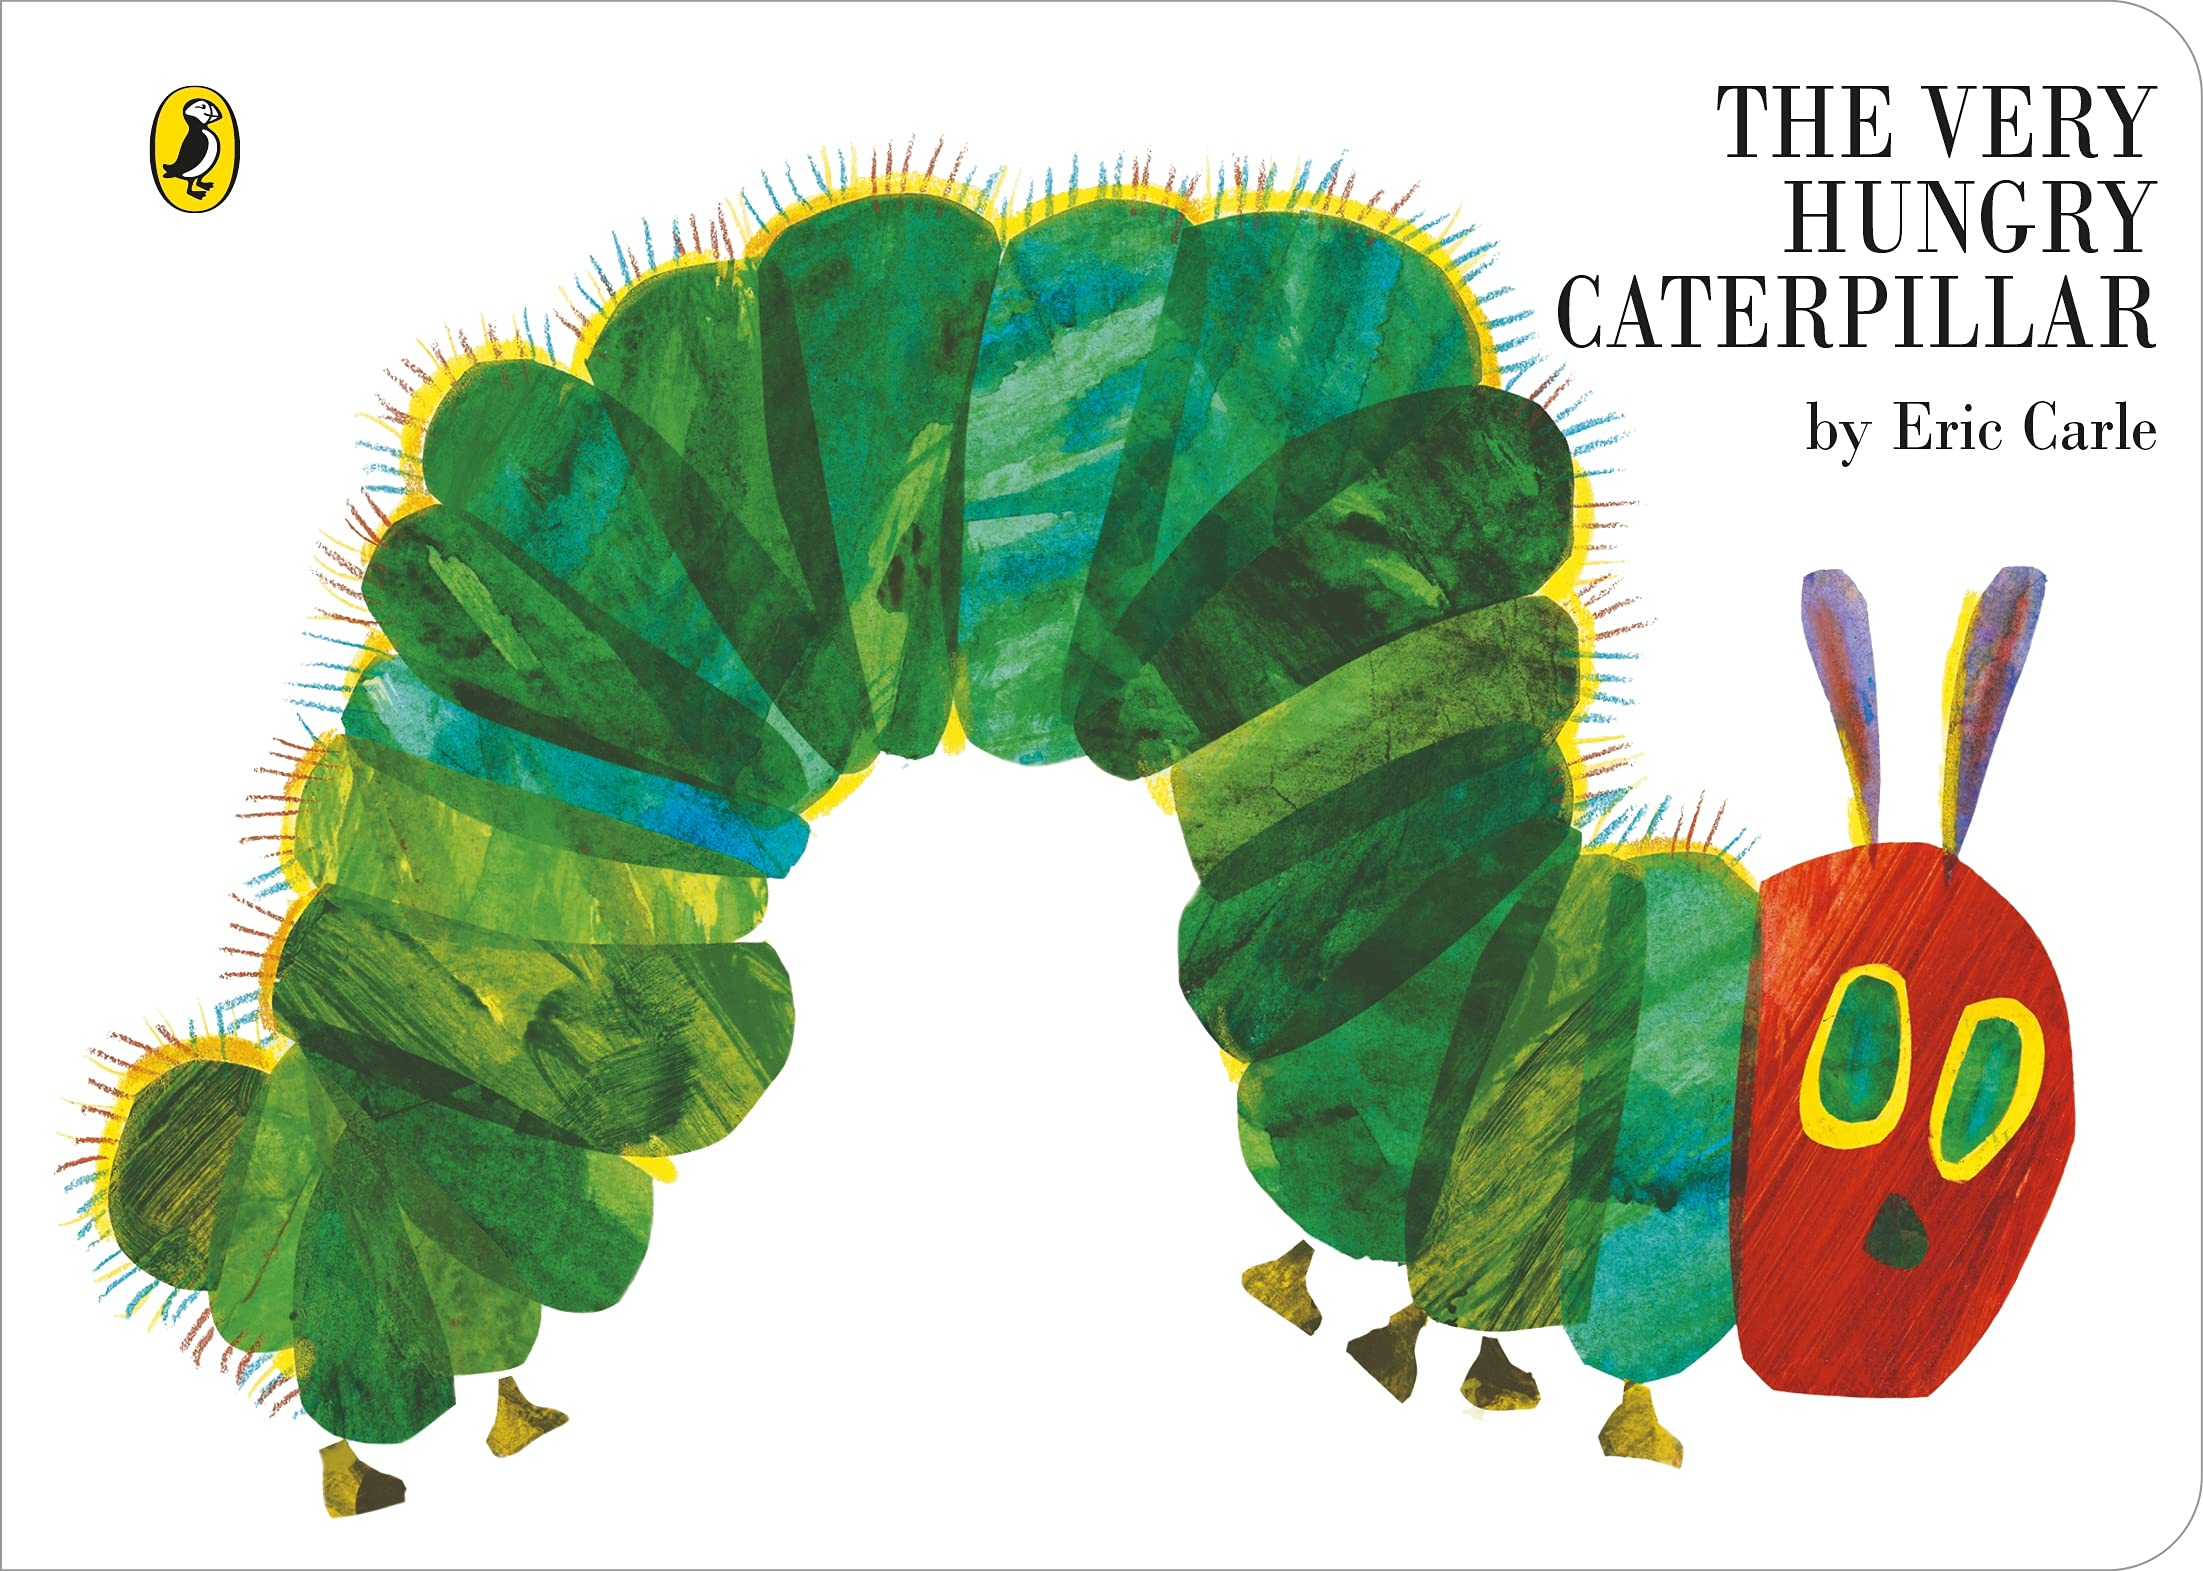 The Very Hungry Caterpillar [Board Book]: Eric Carle : Carle, Eric, Carle,  Eric: Amazon.co.uk: Books